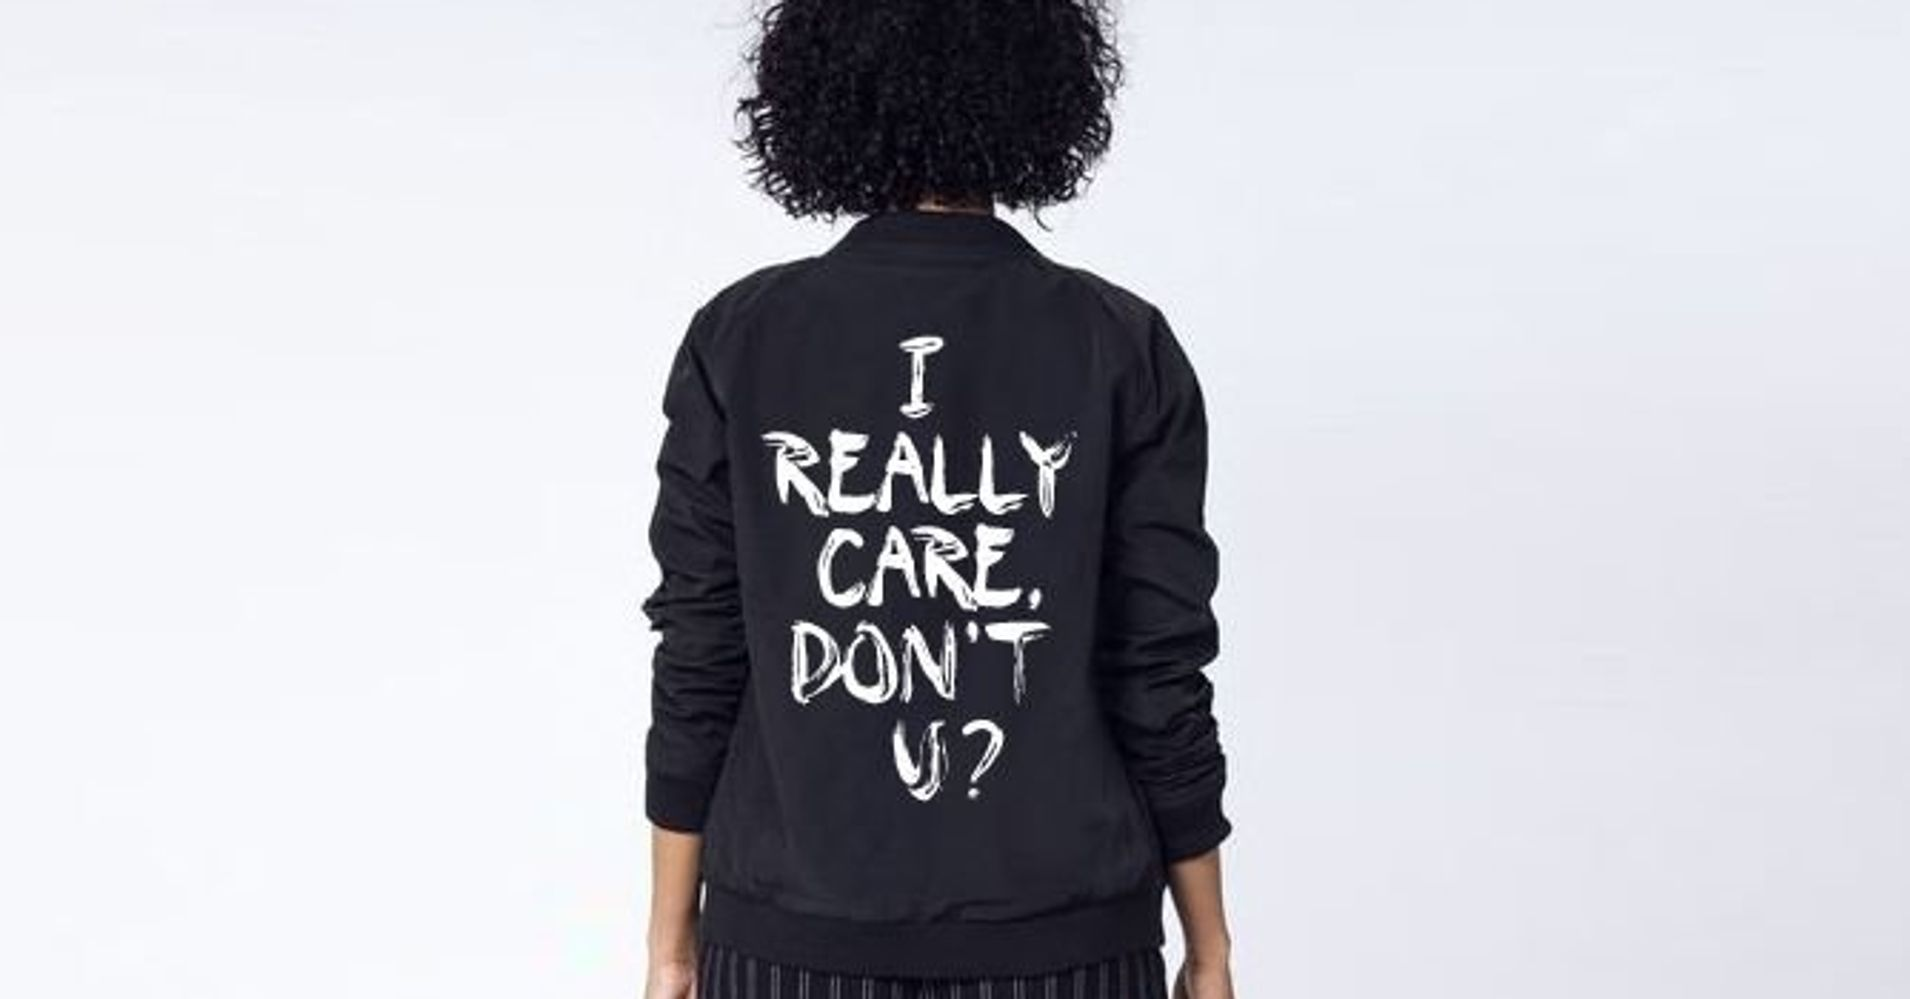 0b5bc354b Melania Trump's Jacket Prompts 'I Really Care' Clothing To Hit The Market |  HuffPost Life